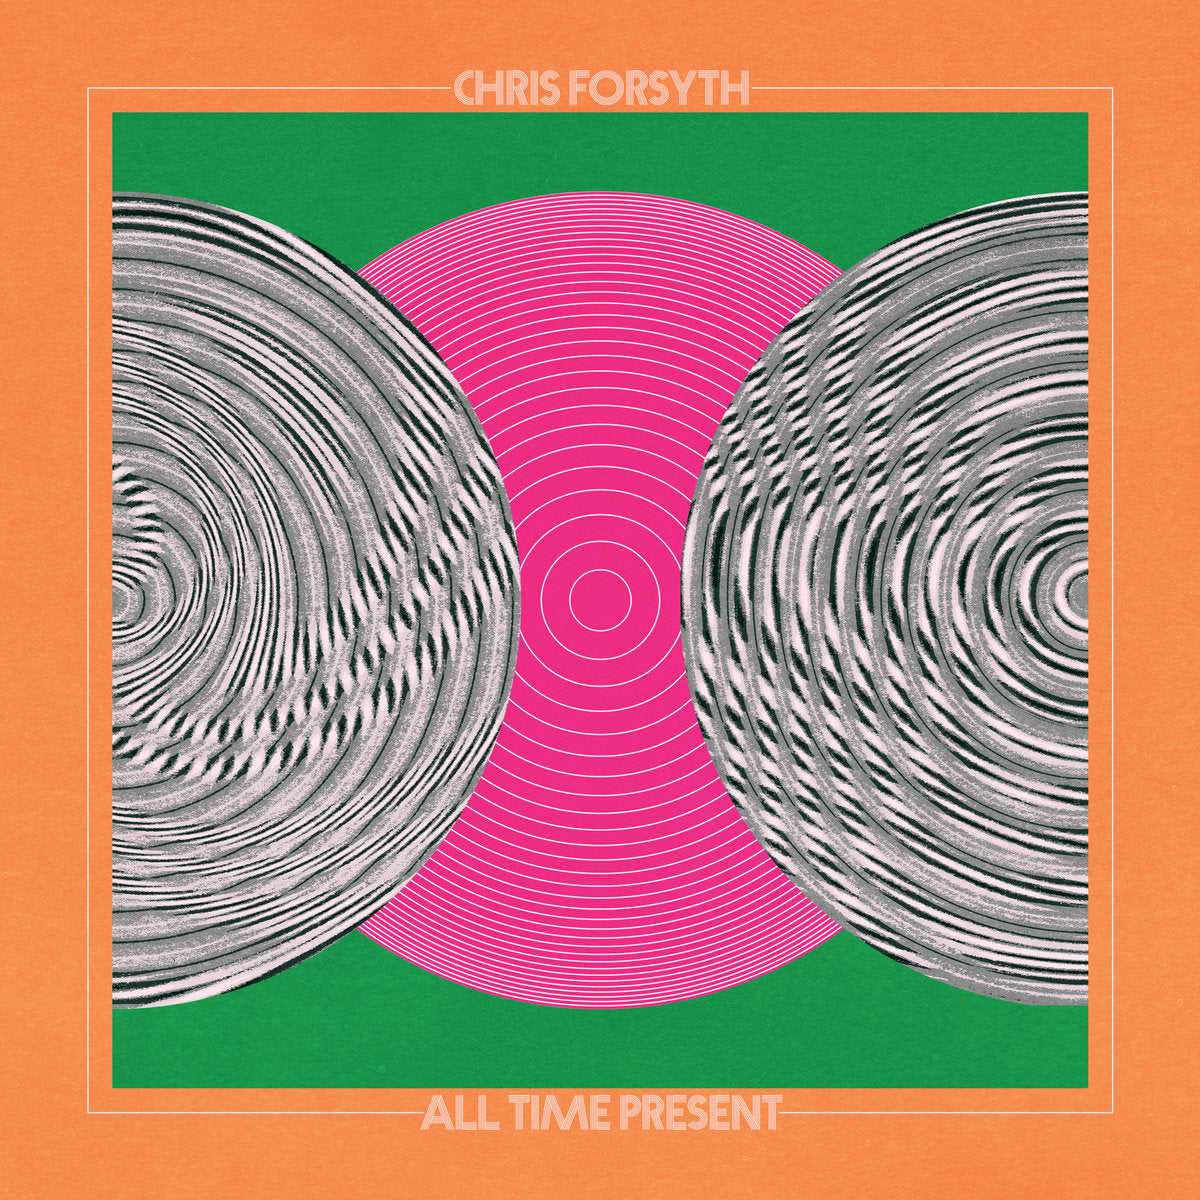 Chris Forsyth - All Time Present 2LP